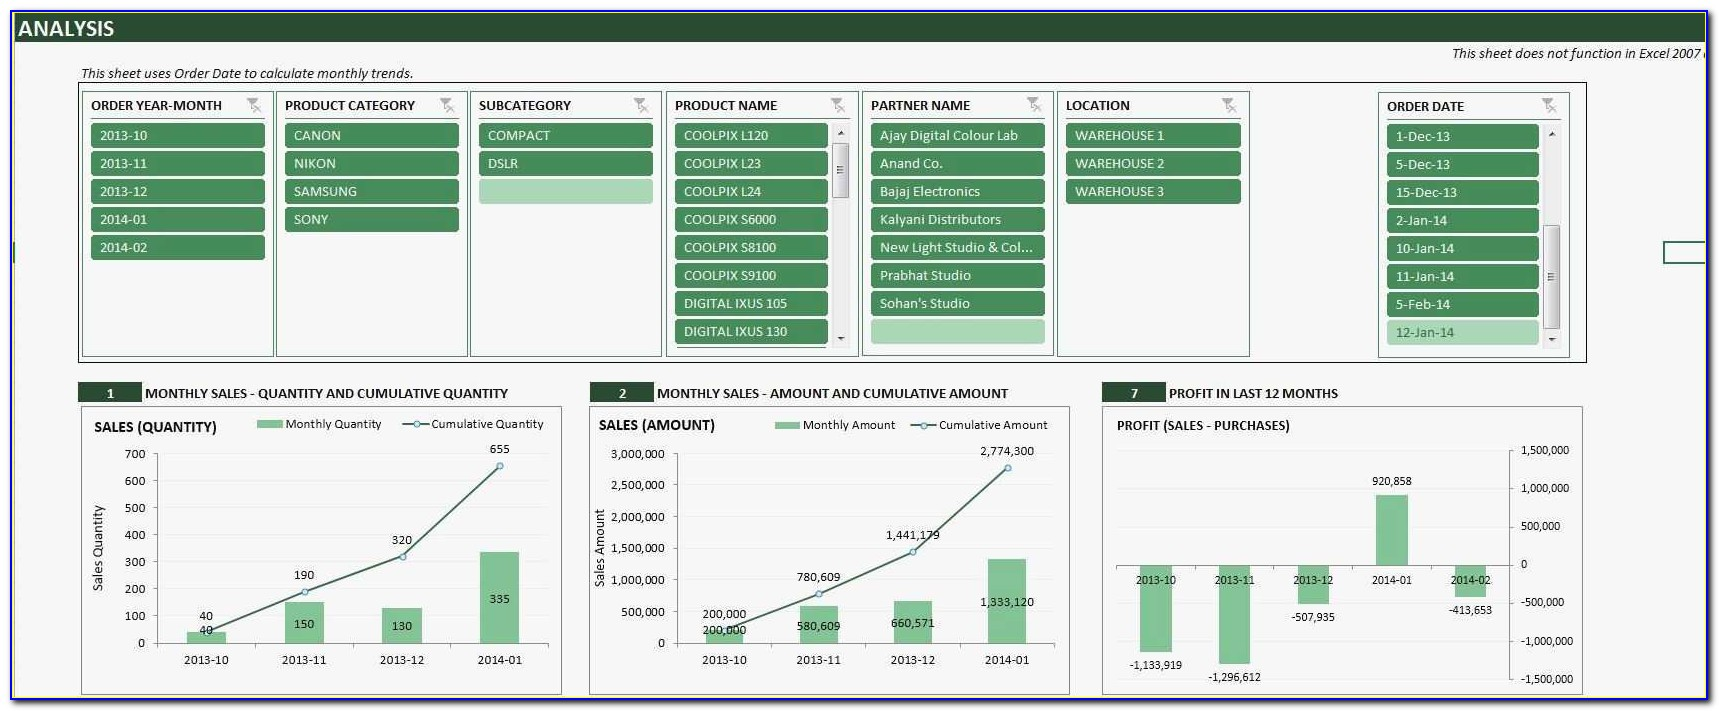 Excel Data Entry Form Template Excel 2007 Elegant Retail Inventory Management Software Excel Template Invoice & Report